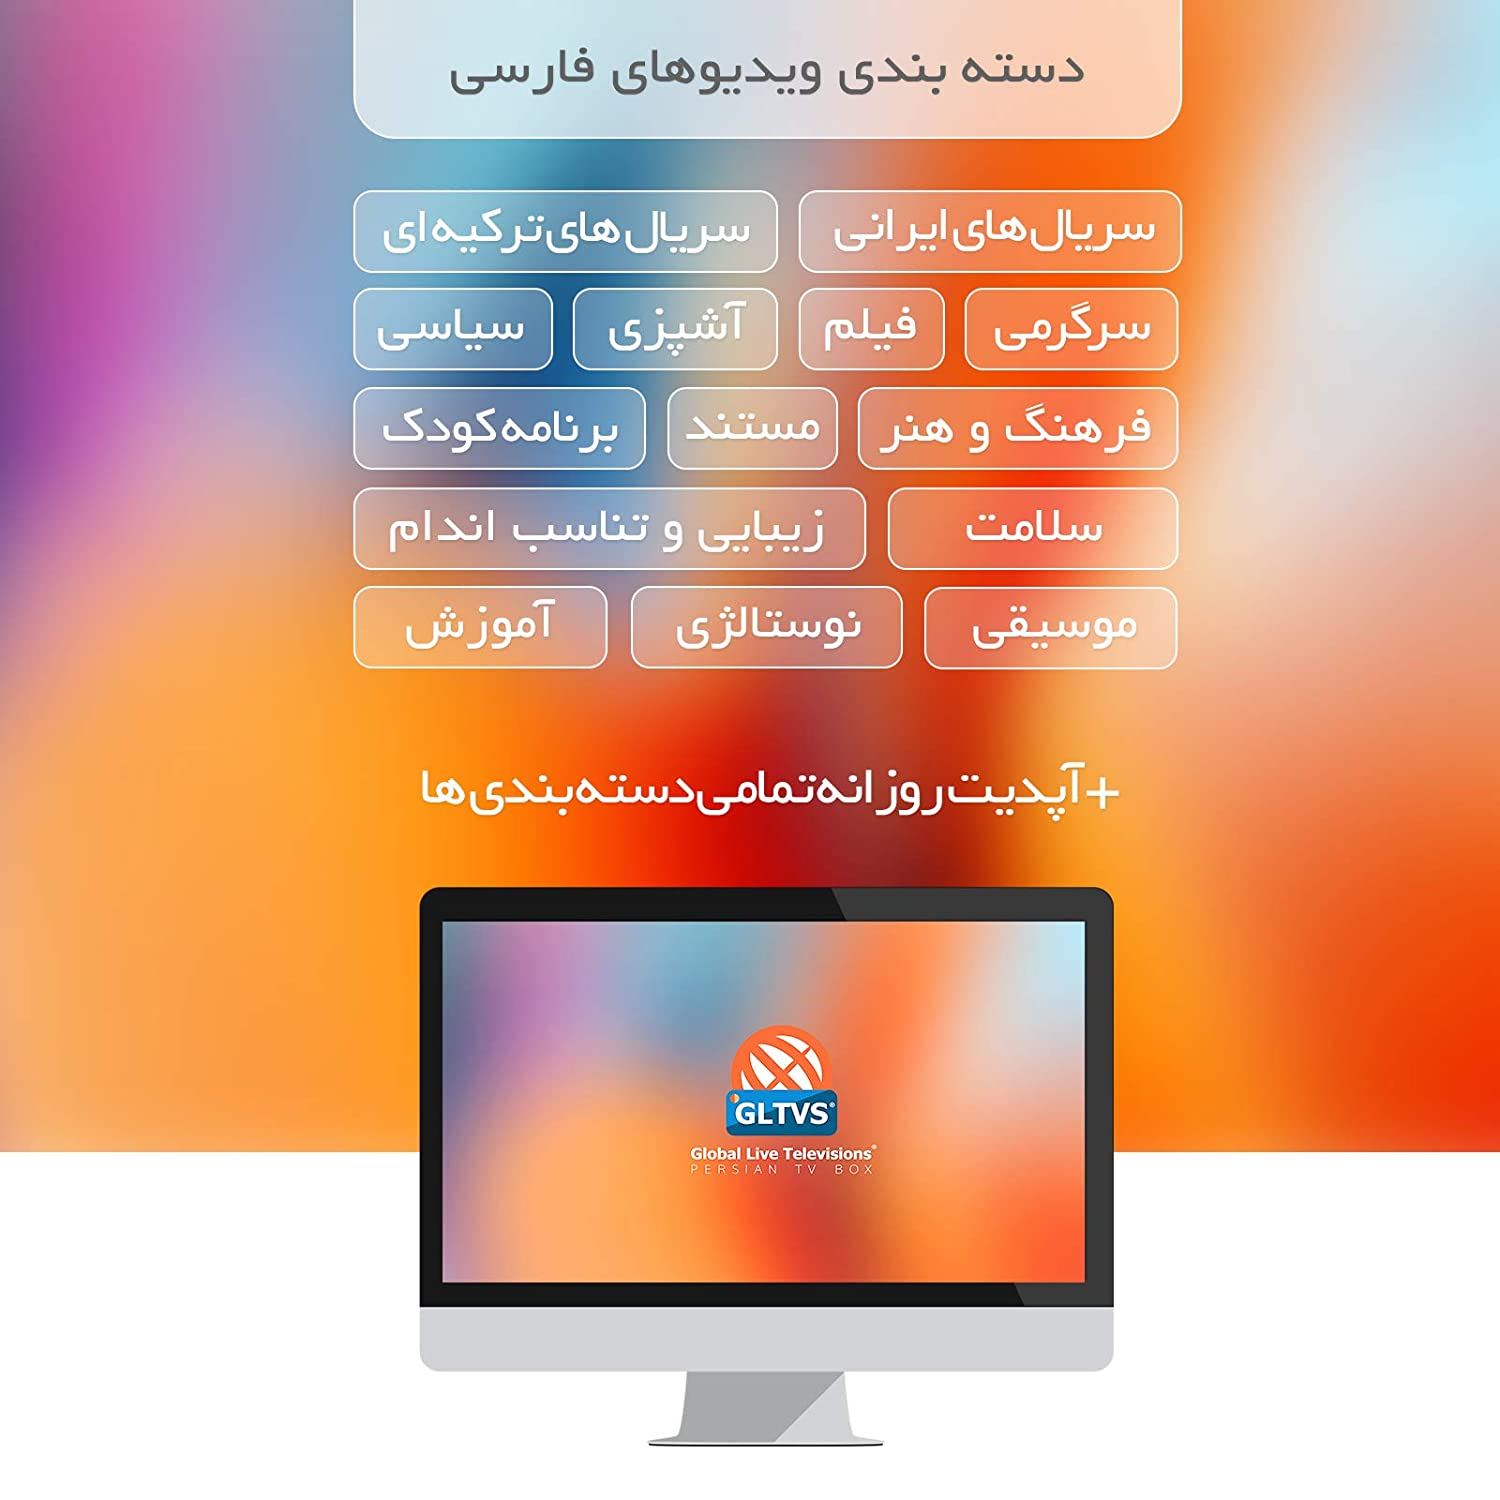 Persian Iranian TV Receiver with Lifetime Unlimited Subscription GEM IRIB  Manoto IranProud Los Angeles Channels, Better Than GLWIZ